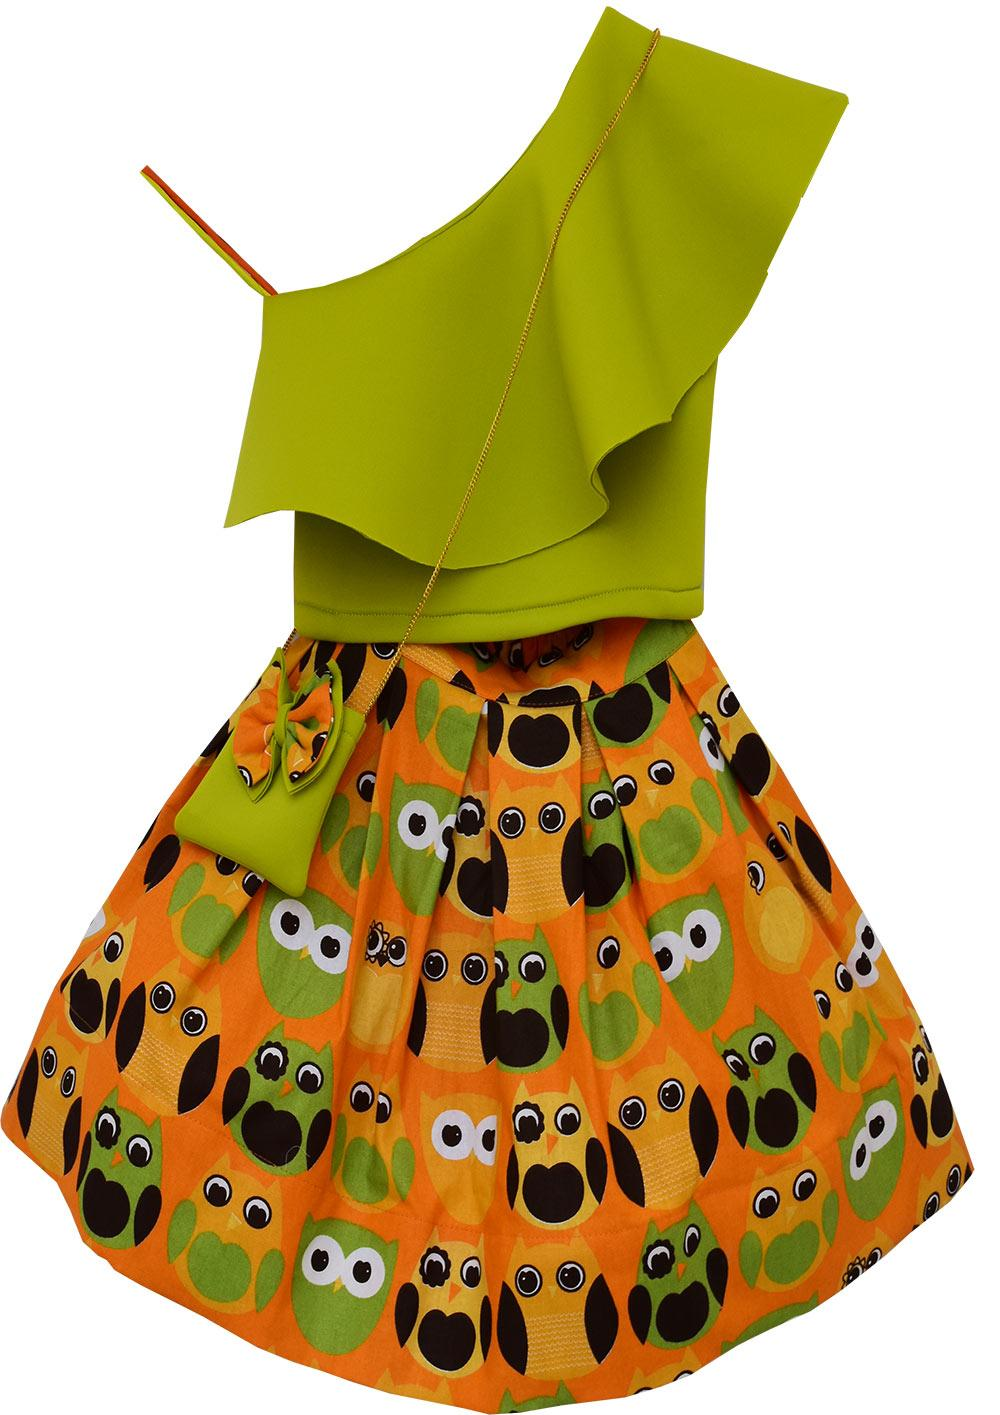 38a6b09eeaec23 Green crop top and printed skirt by Fayon Kids